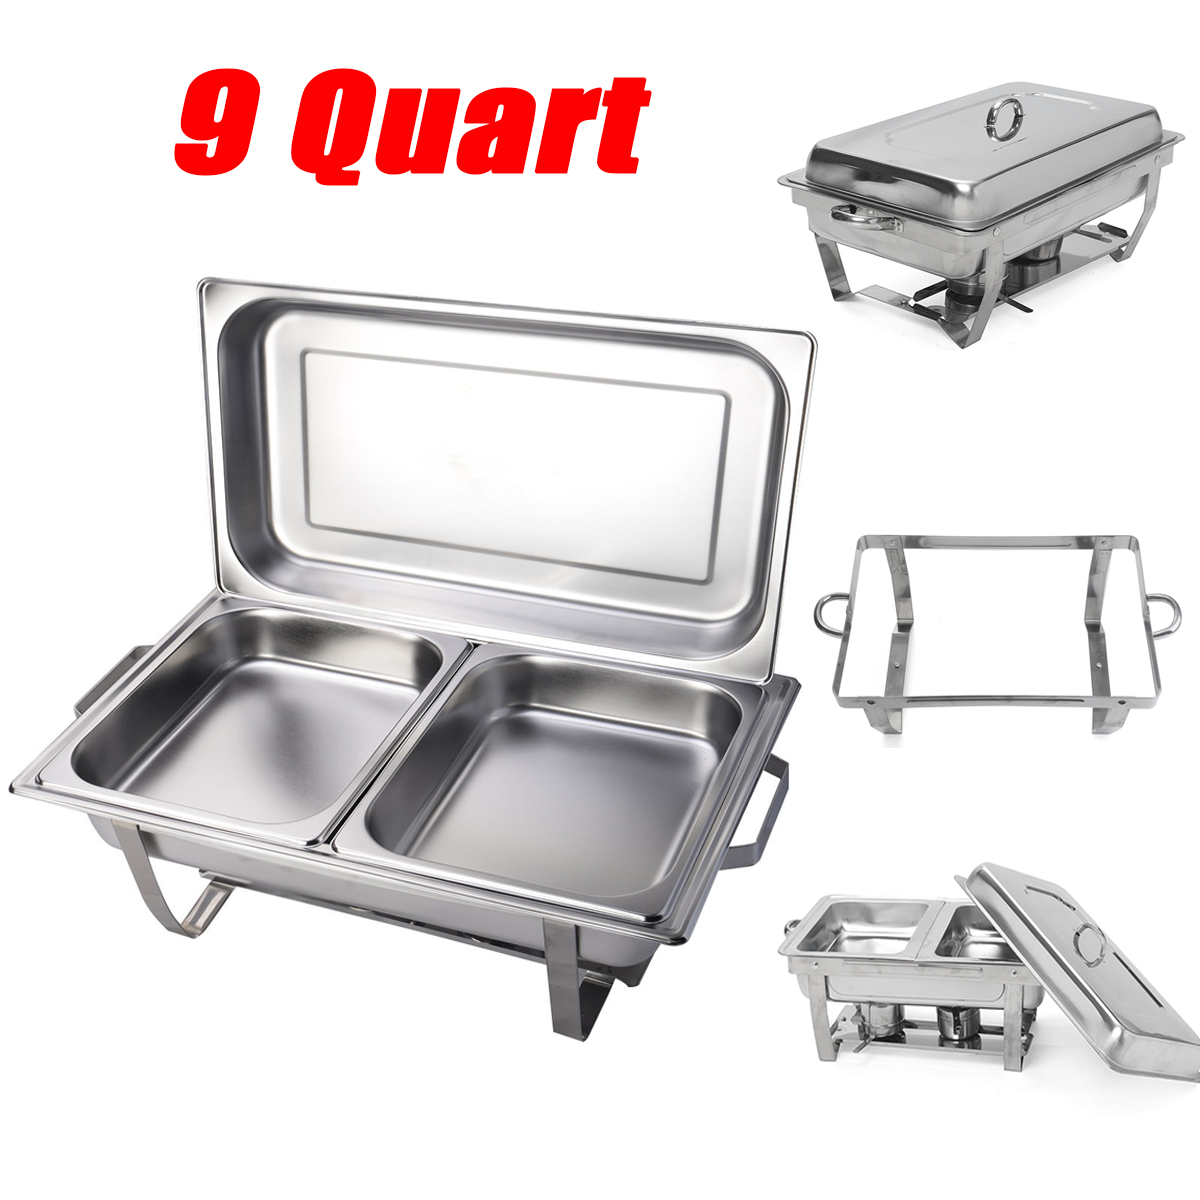 4-Piece of 9 Quart Stainless Steel Rectangular Chafing Dish Buffet Full Size Buffet Food Warmers Easy to Clean by